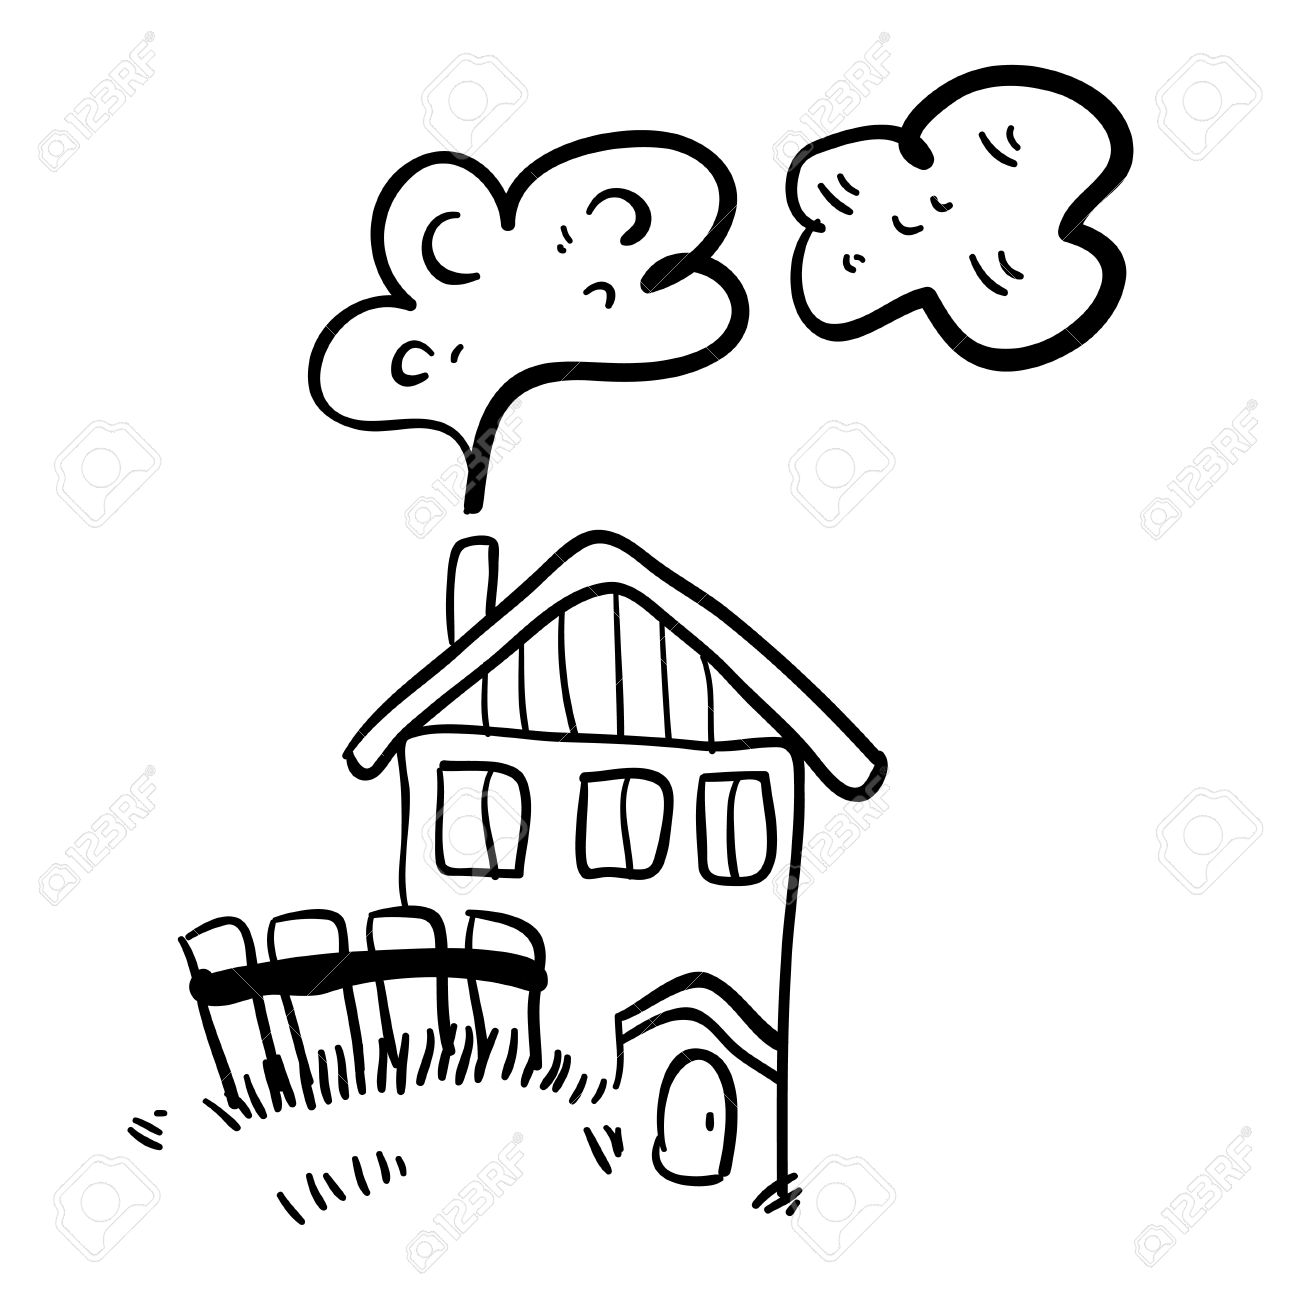 1300x1300 Cute Doodle Farm House On White Background. Simple Illustration